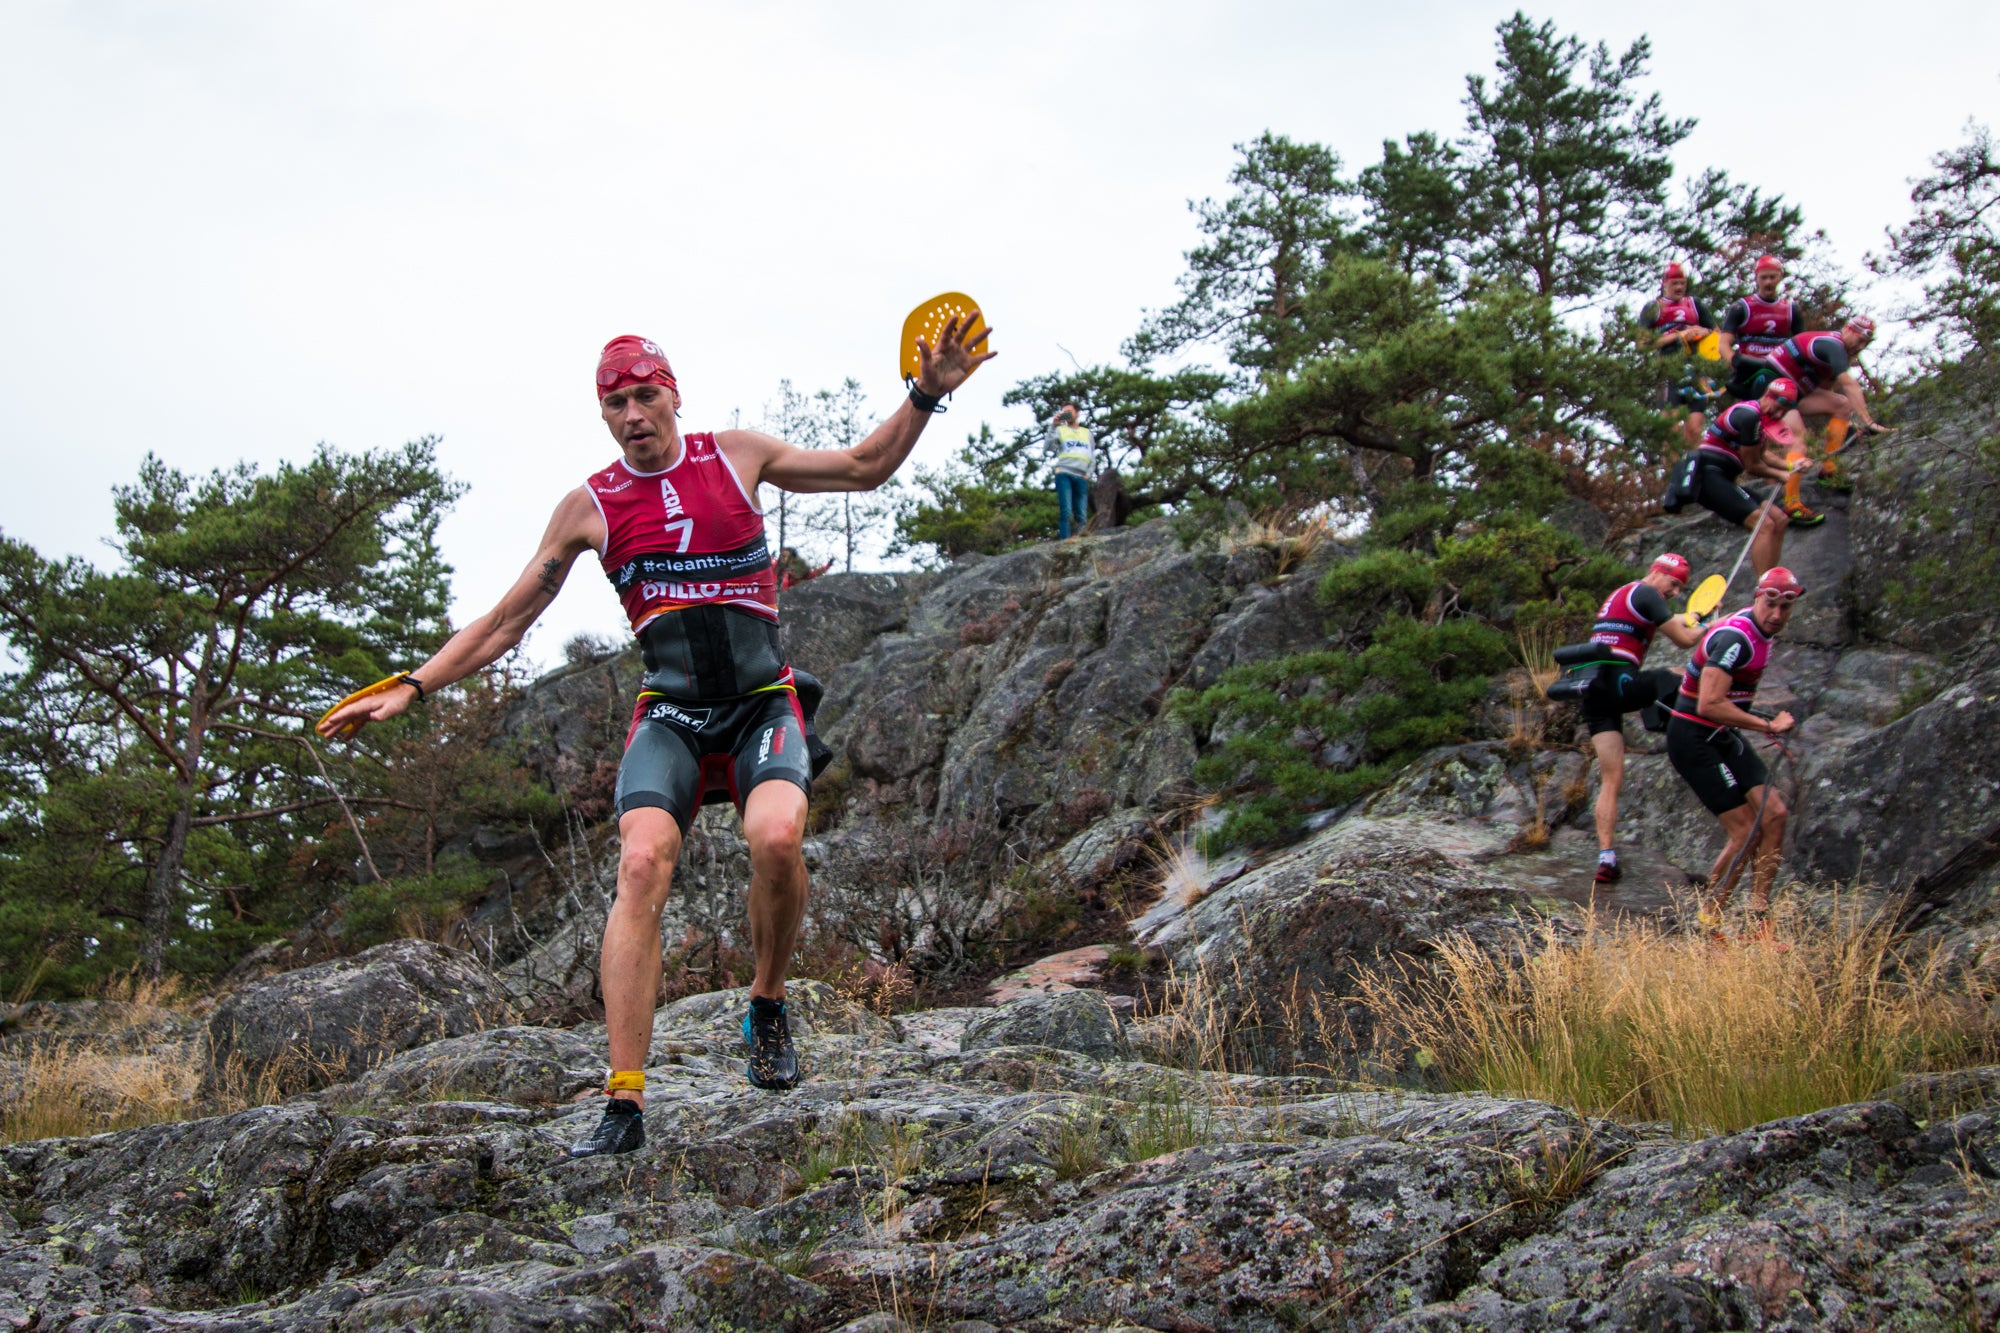 Otillo Swimrun World Championship 2019